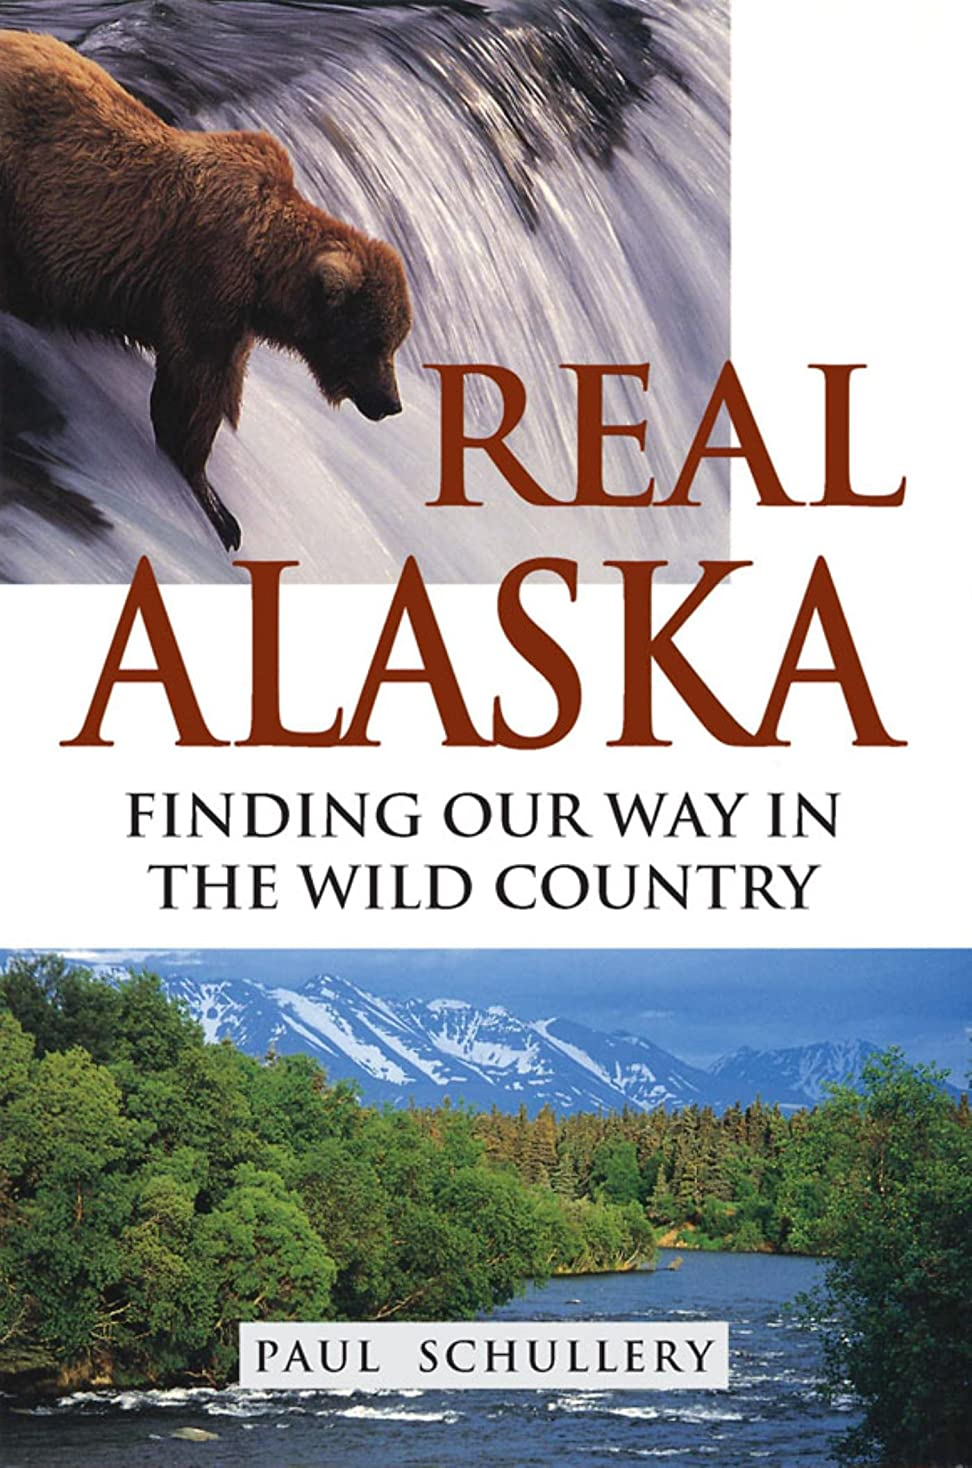 ペチュランス火傷工業化するReal Alaska: Finding Our Way in the Wild Country (English Edition)